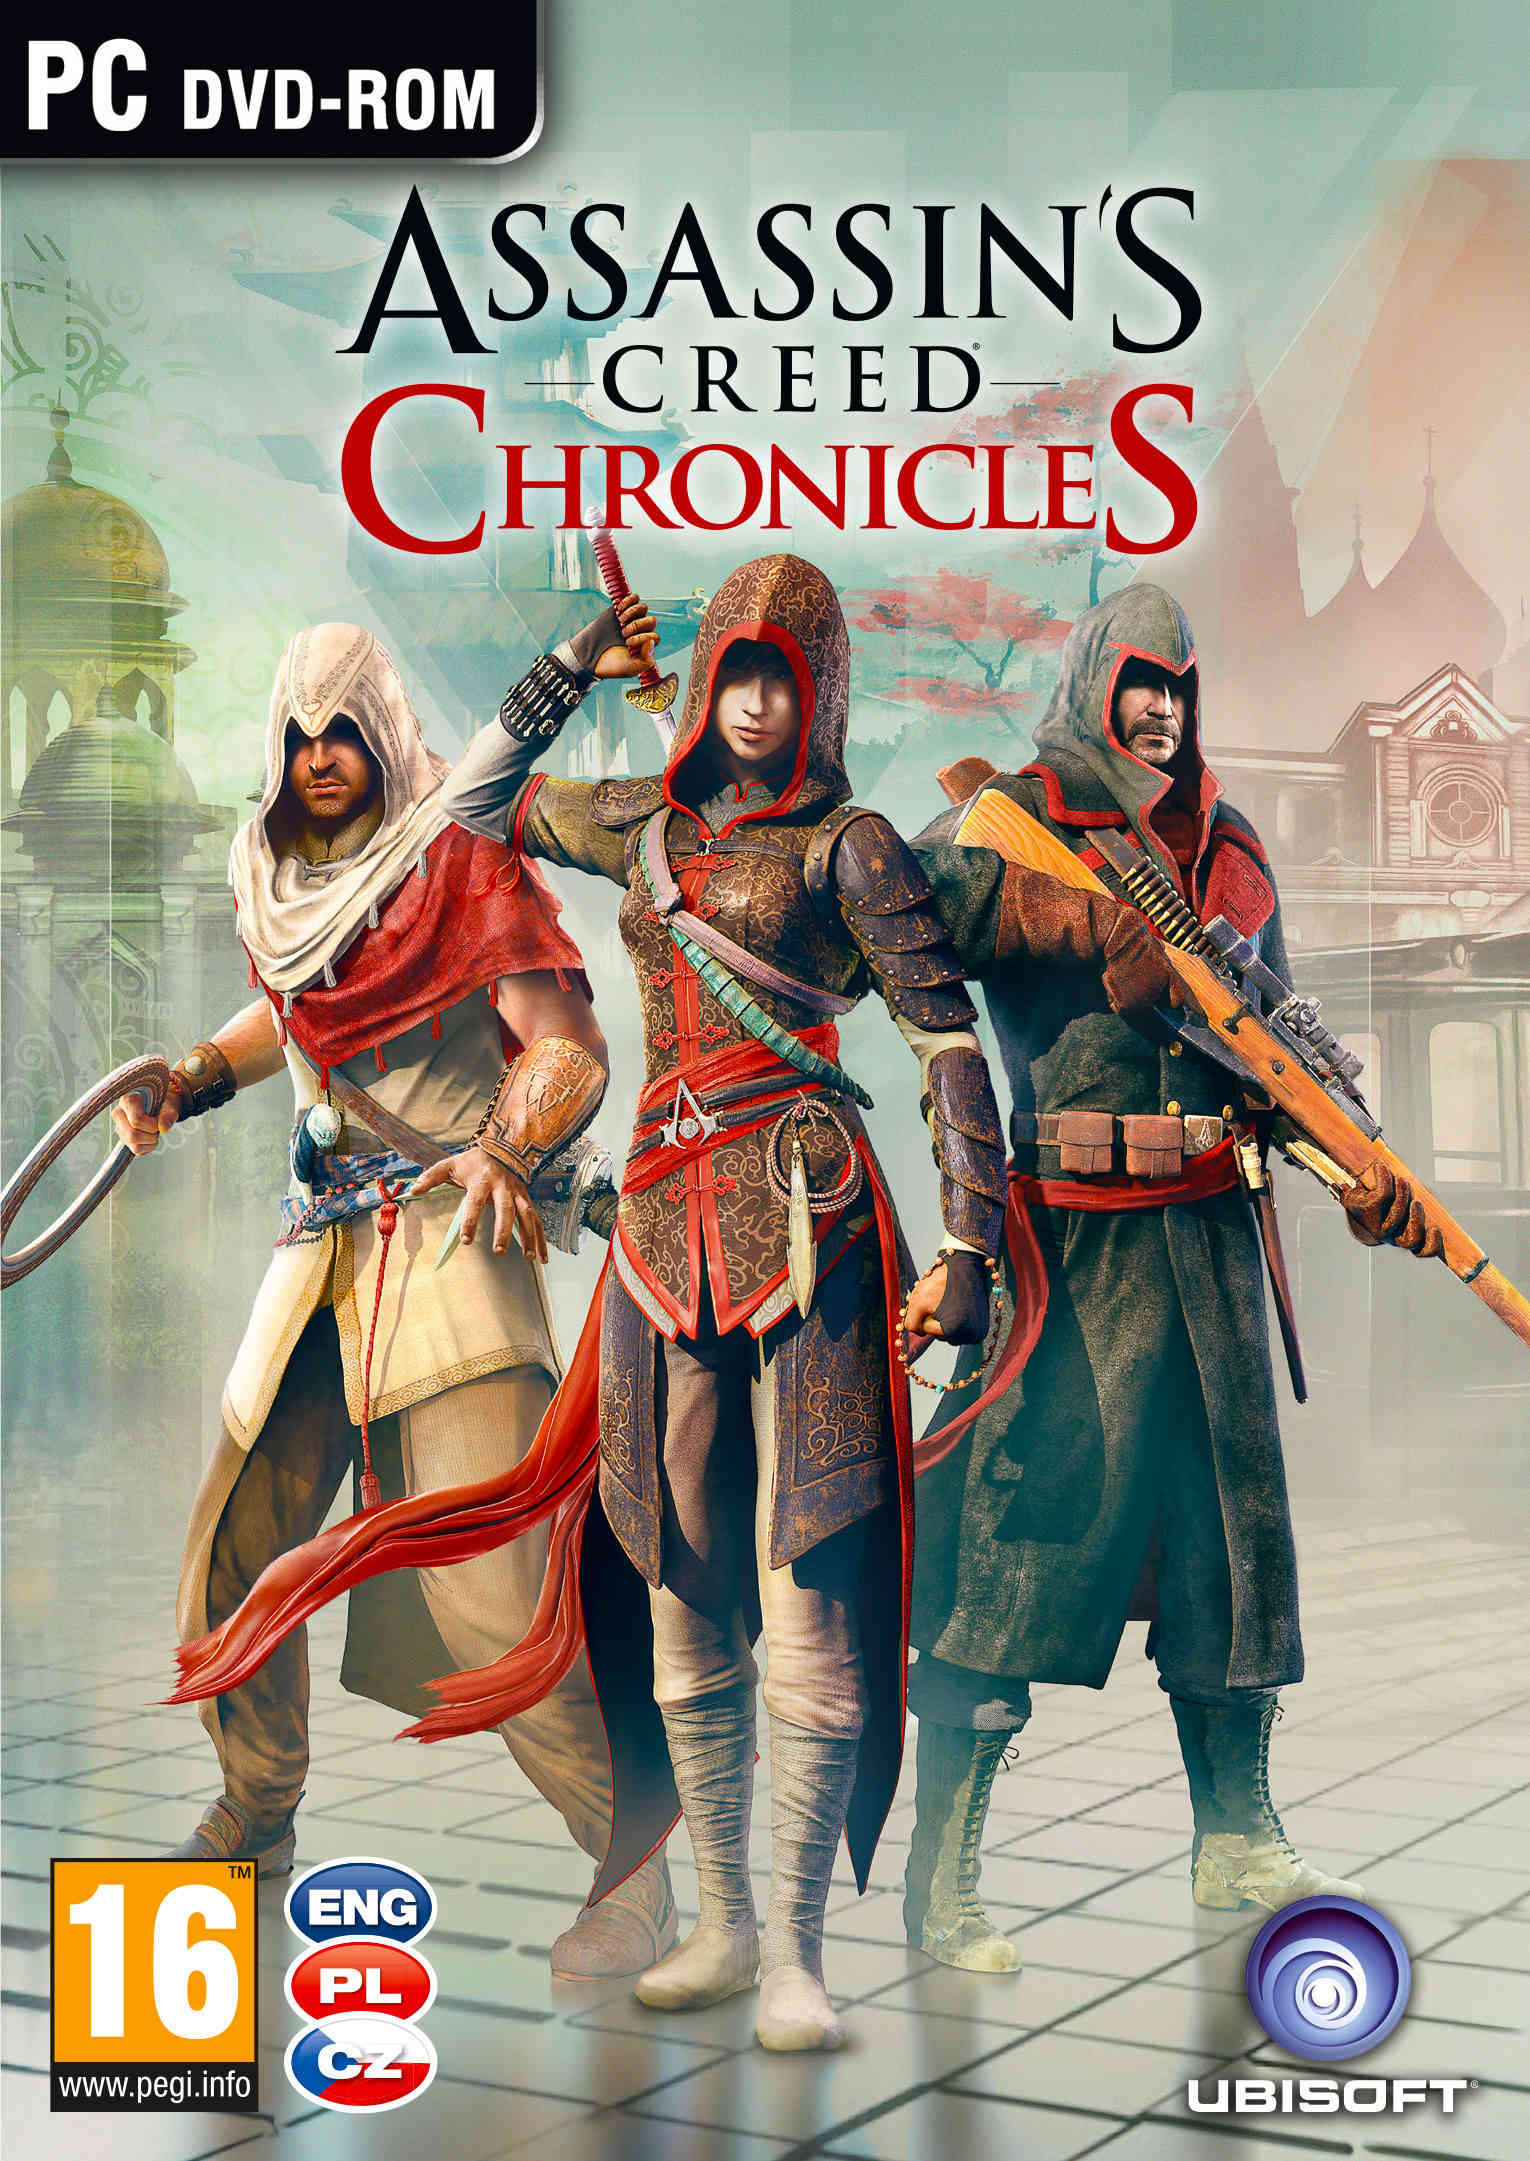 PC CD - Assassins Creed Chronicles